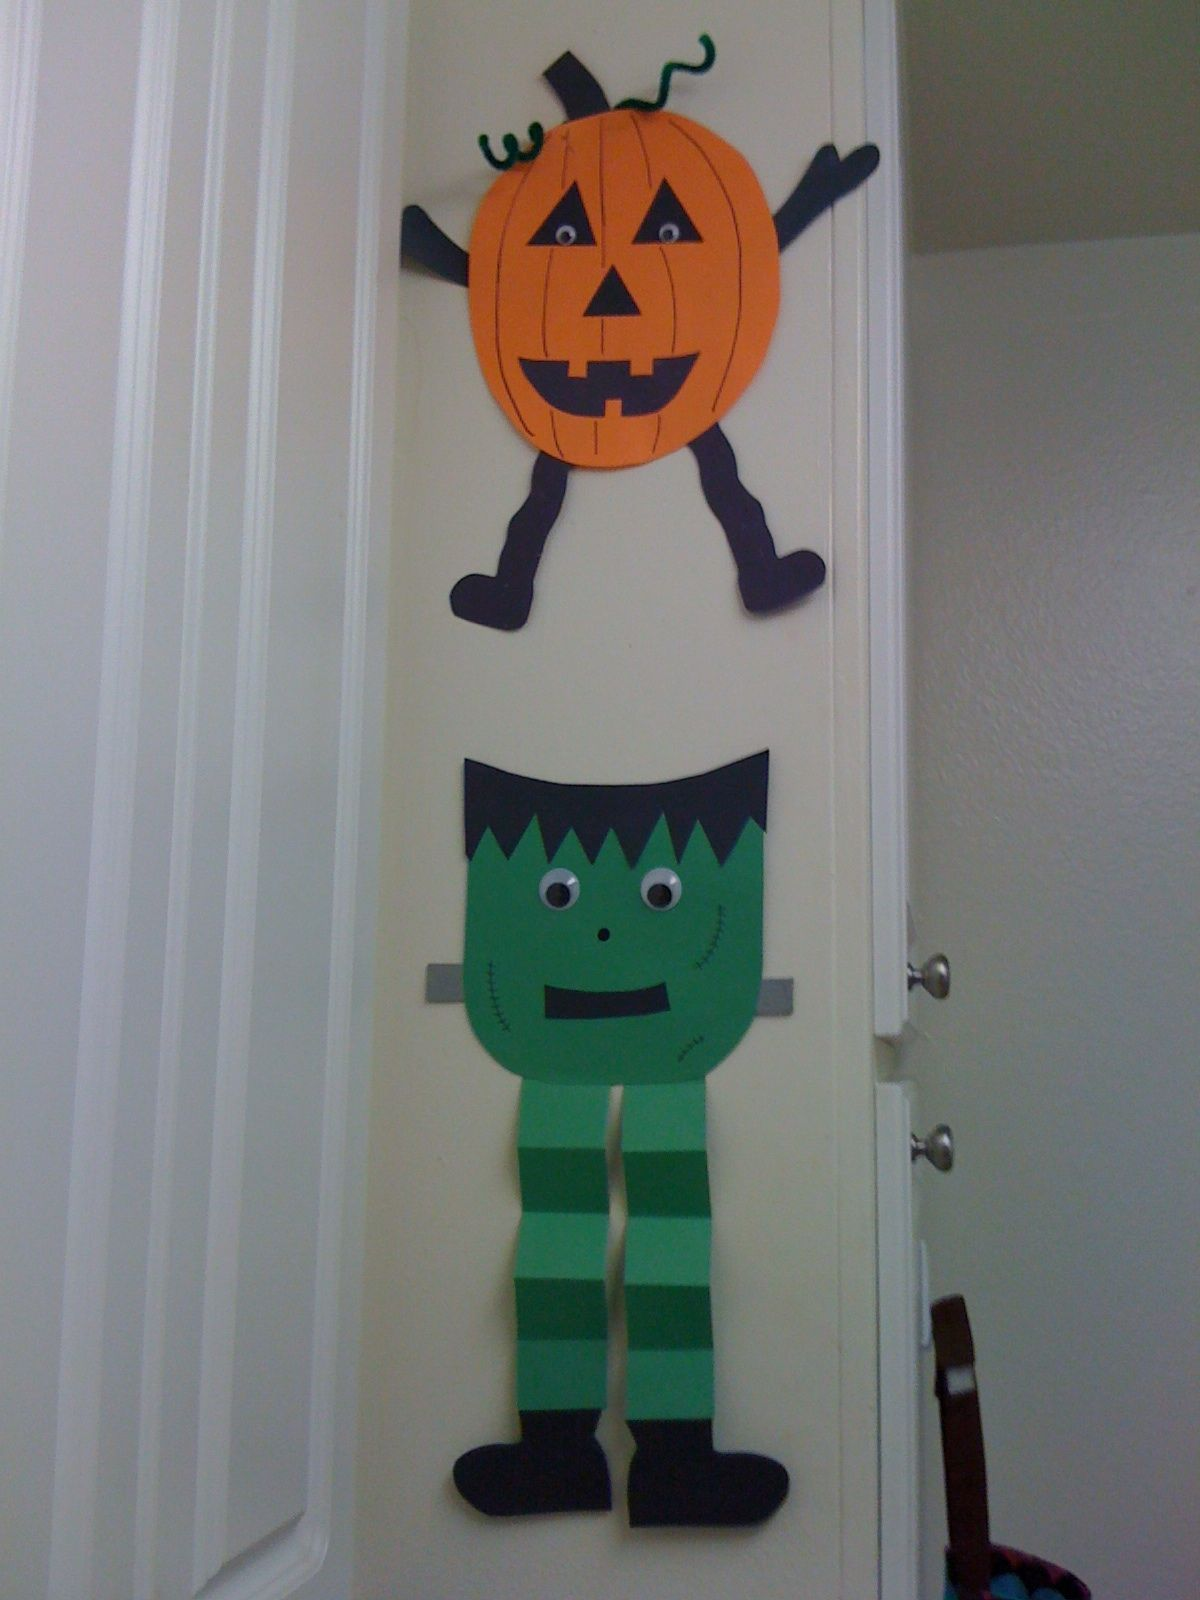 Construction Paper Glue Stick Pipe Cleaners Google Eyes And Sharpie. Precious Halloween